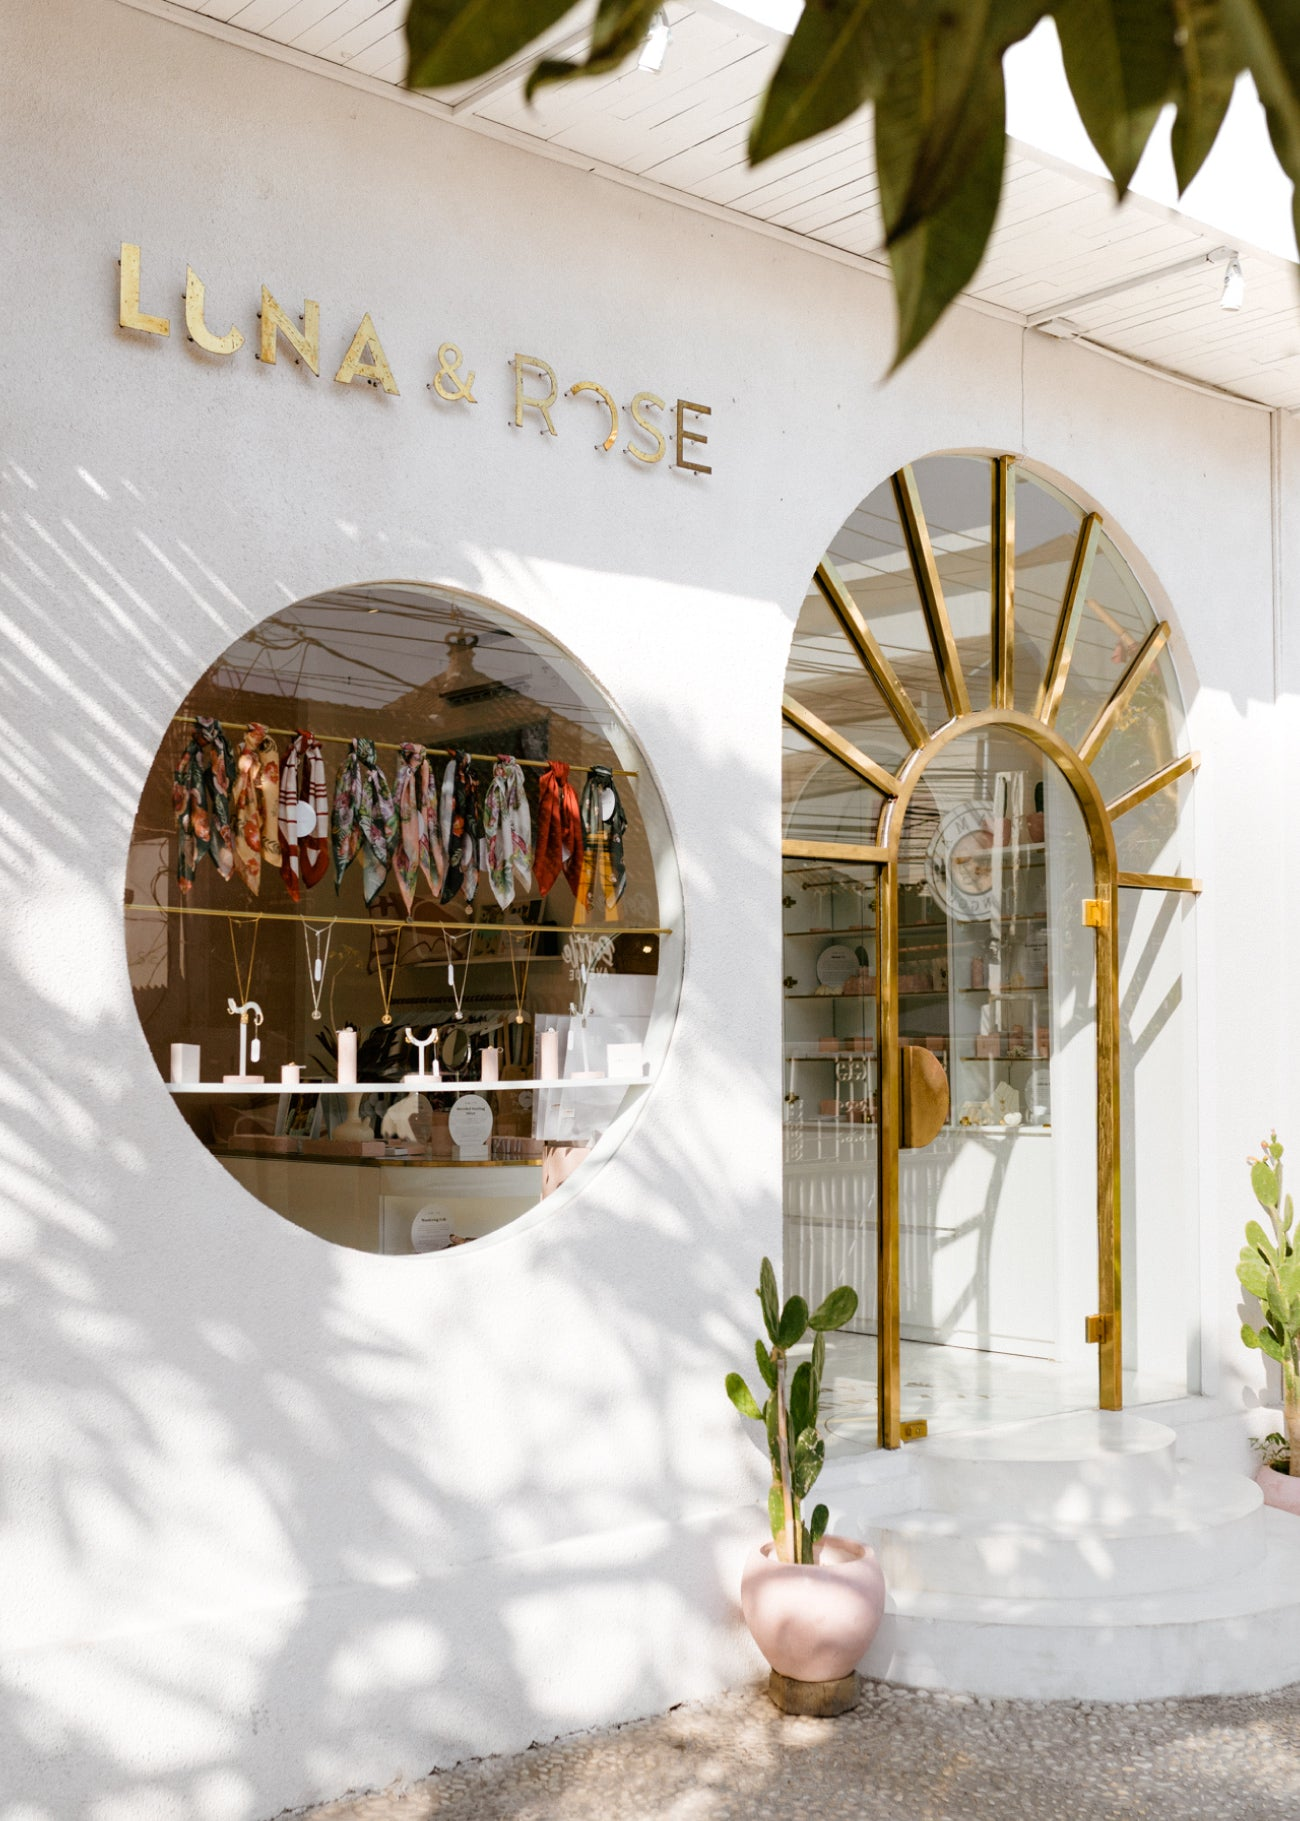 Luna & Rose shop in Bali